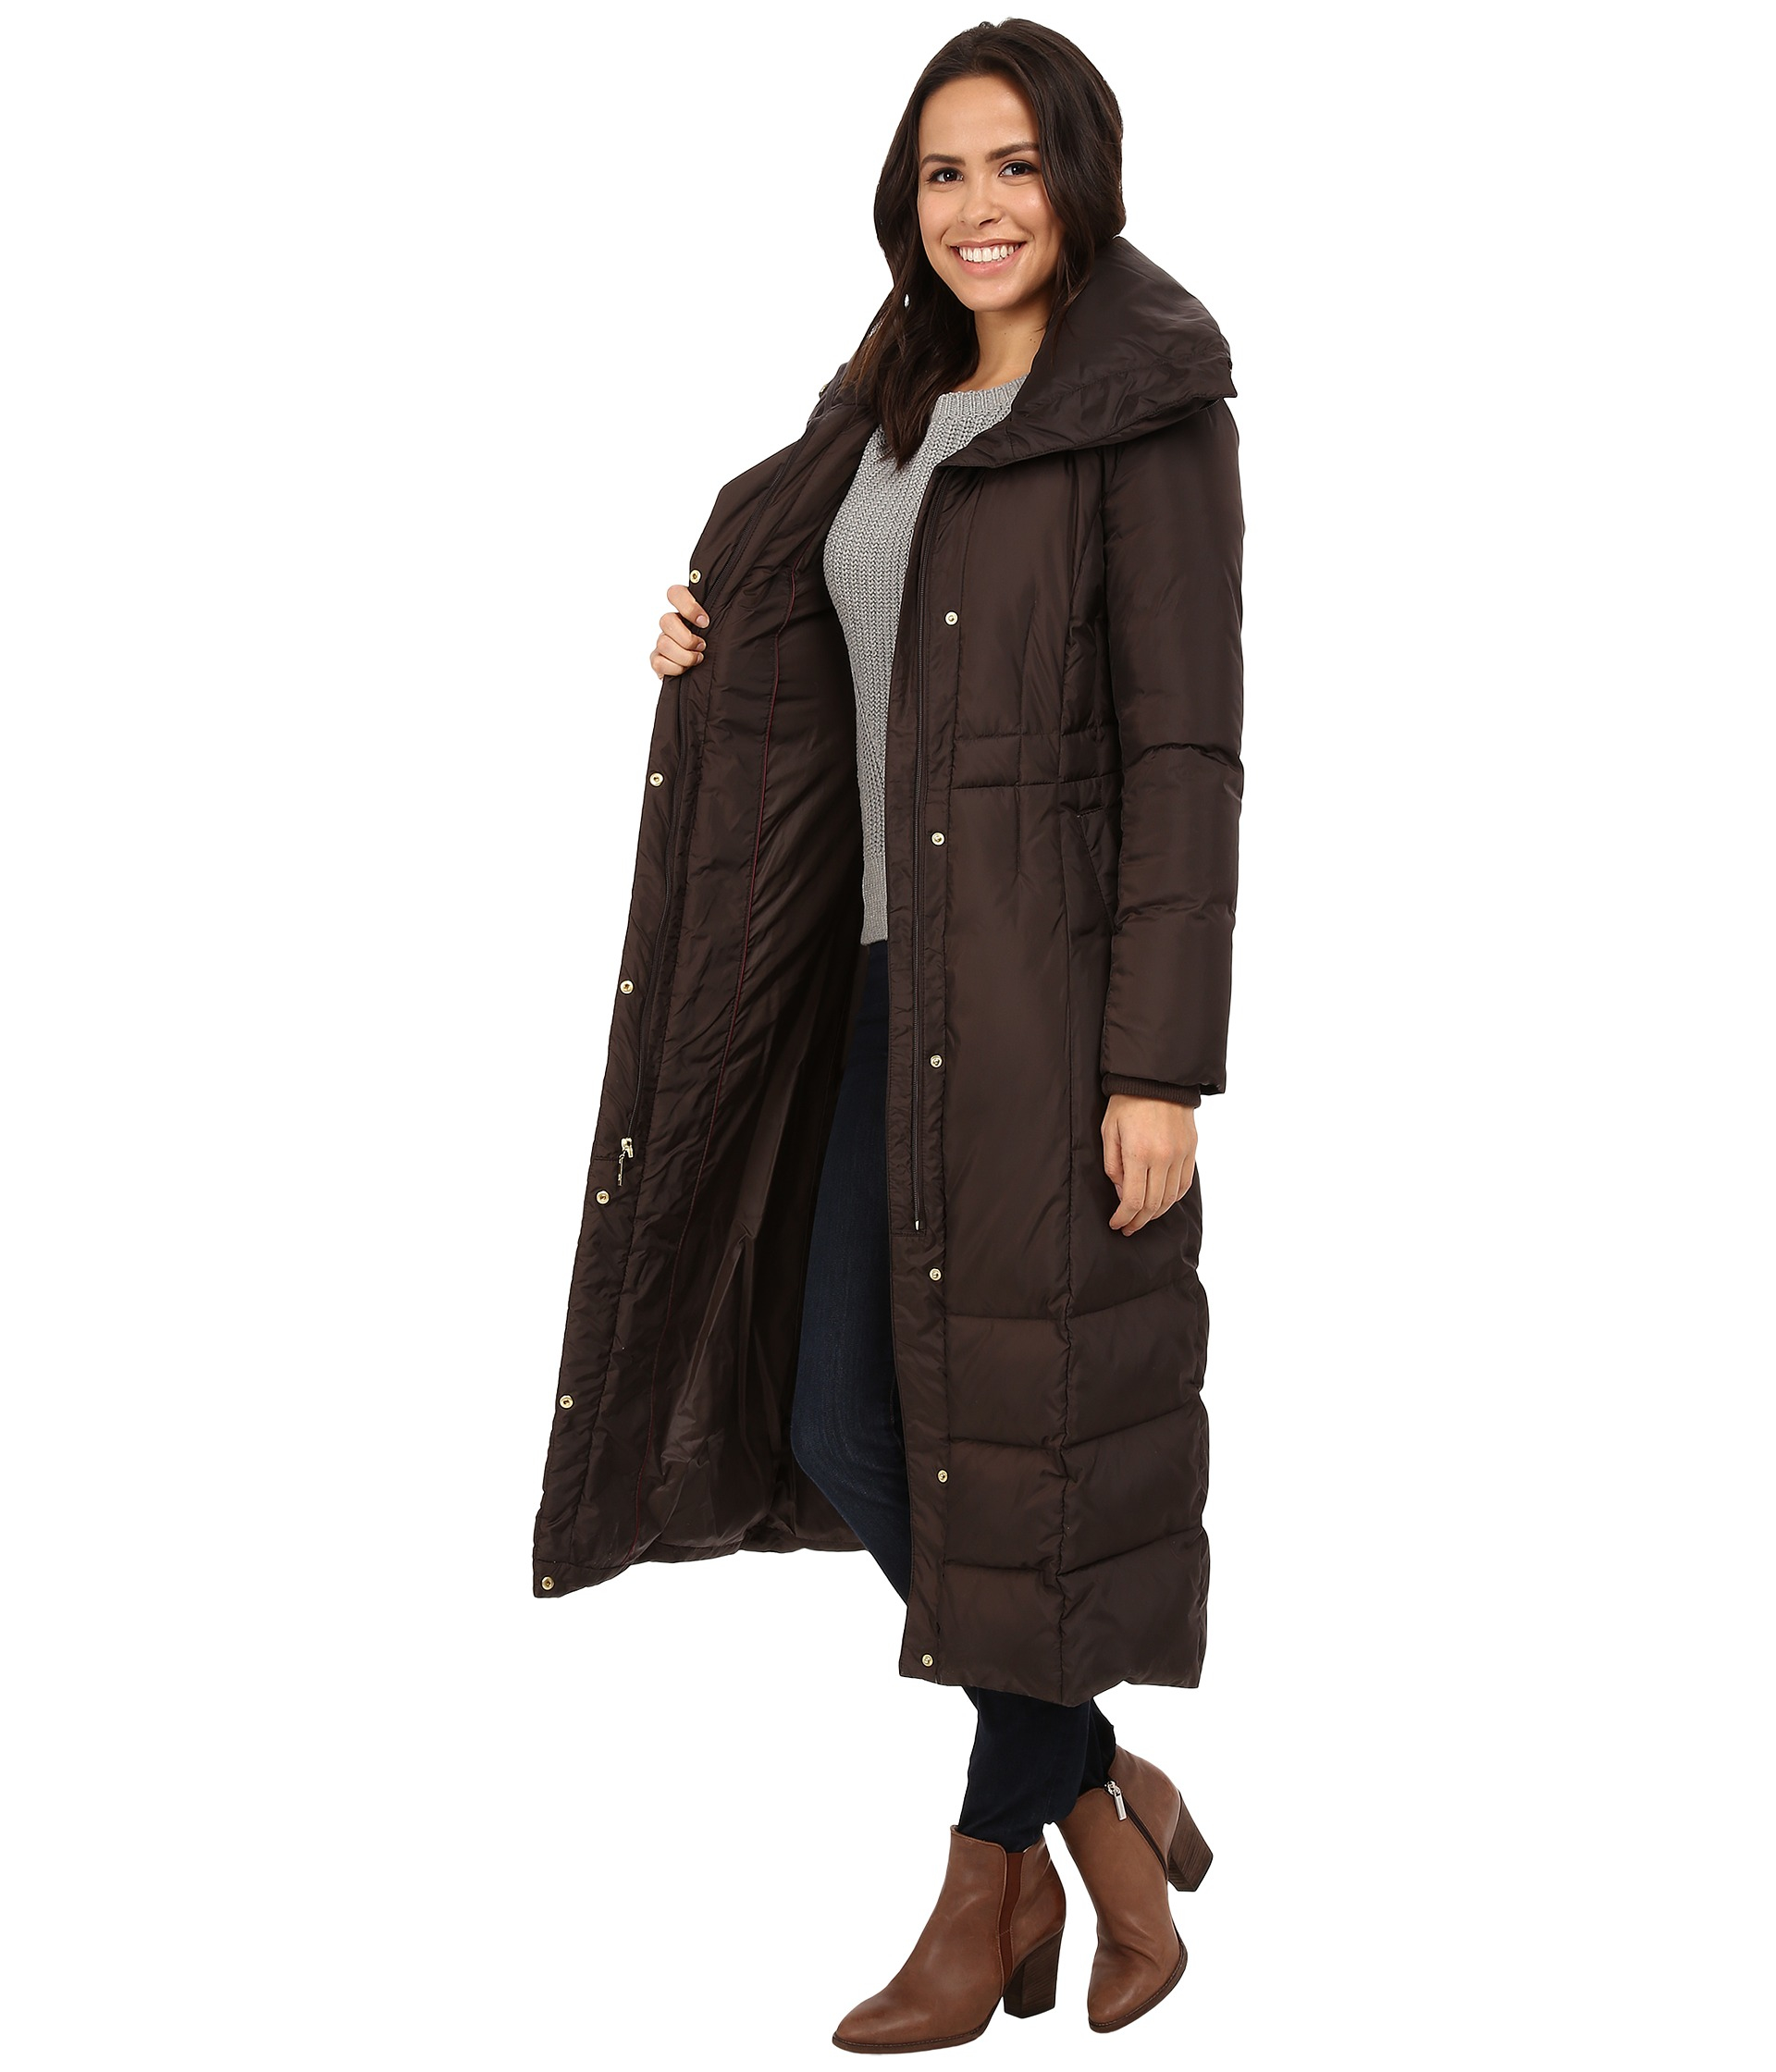 Cole haan Down Coat With Oversized Collar in Brown | Lyst